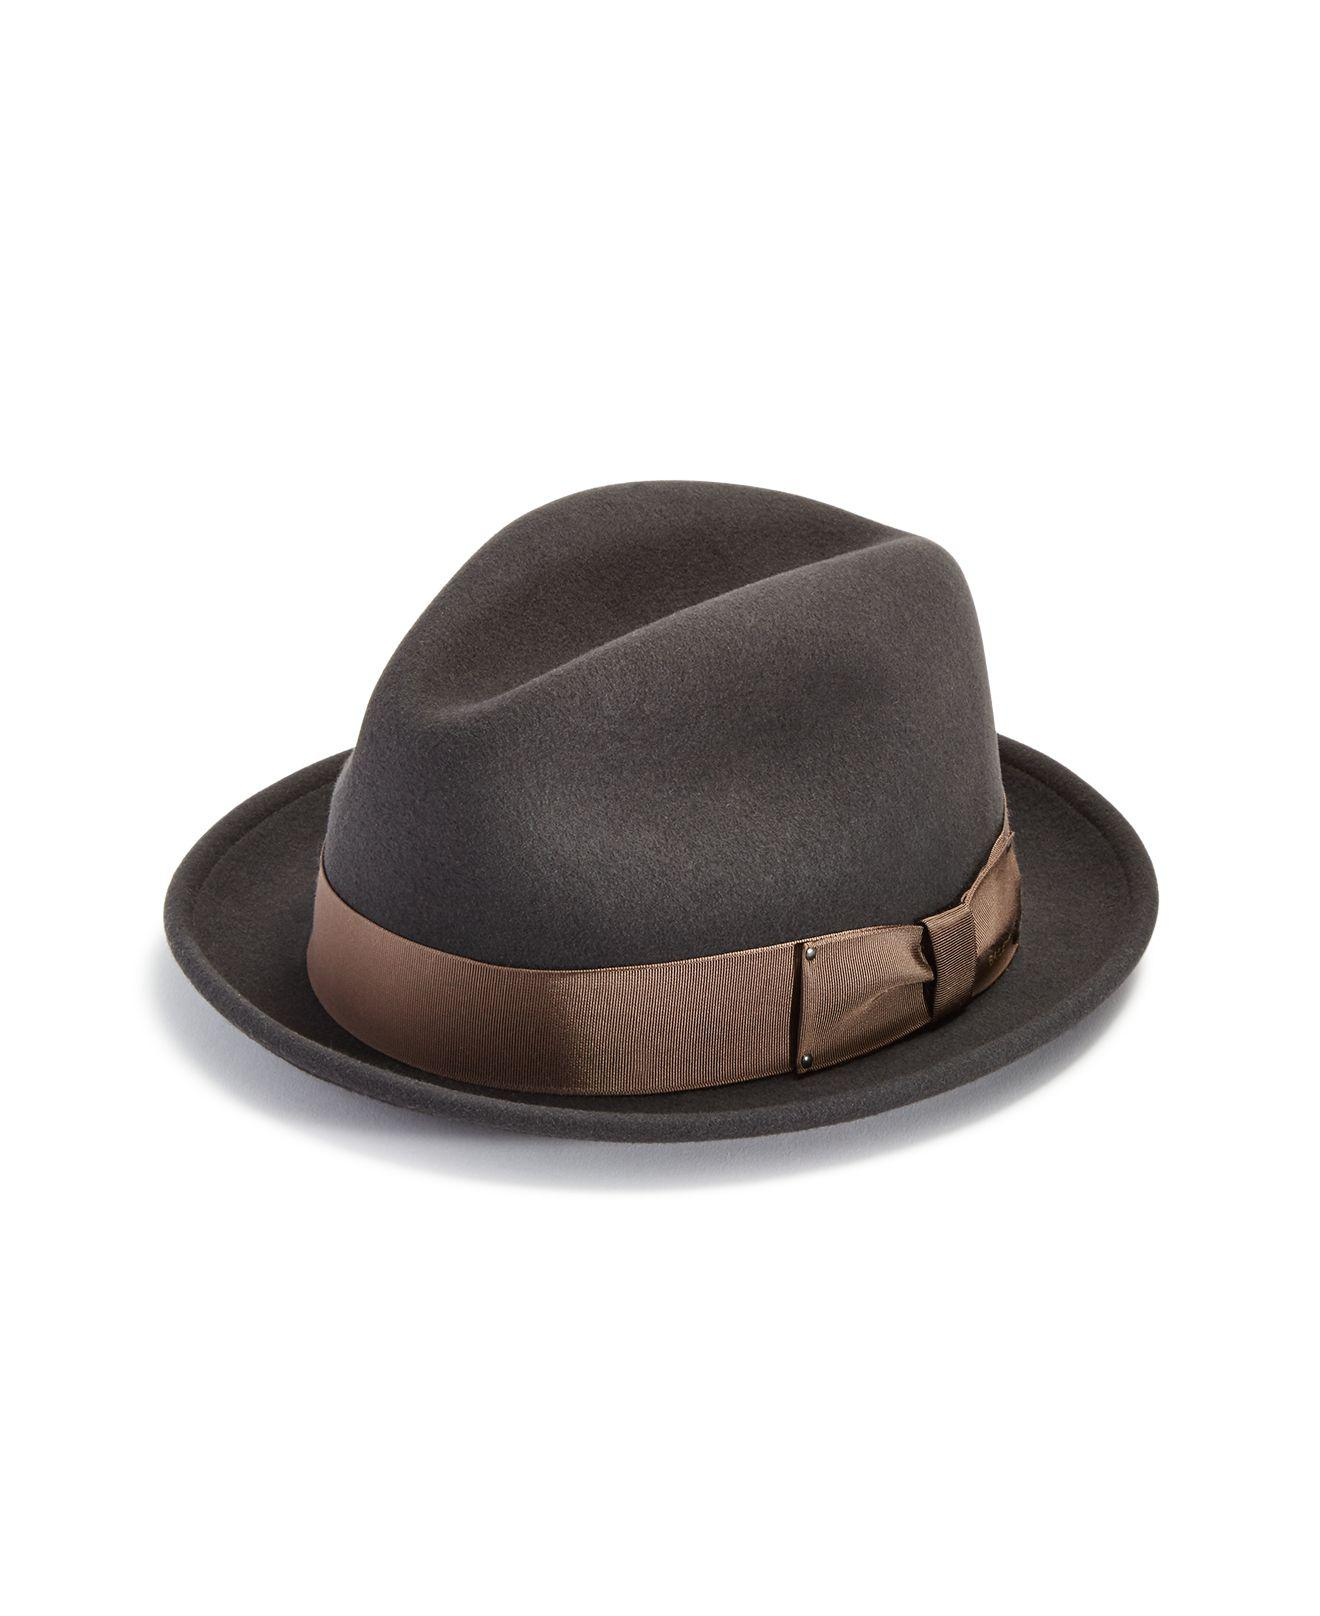 Lyst - Bailey of Hollywood Tino Hat for Men c79969def4e